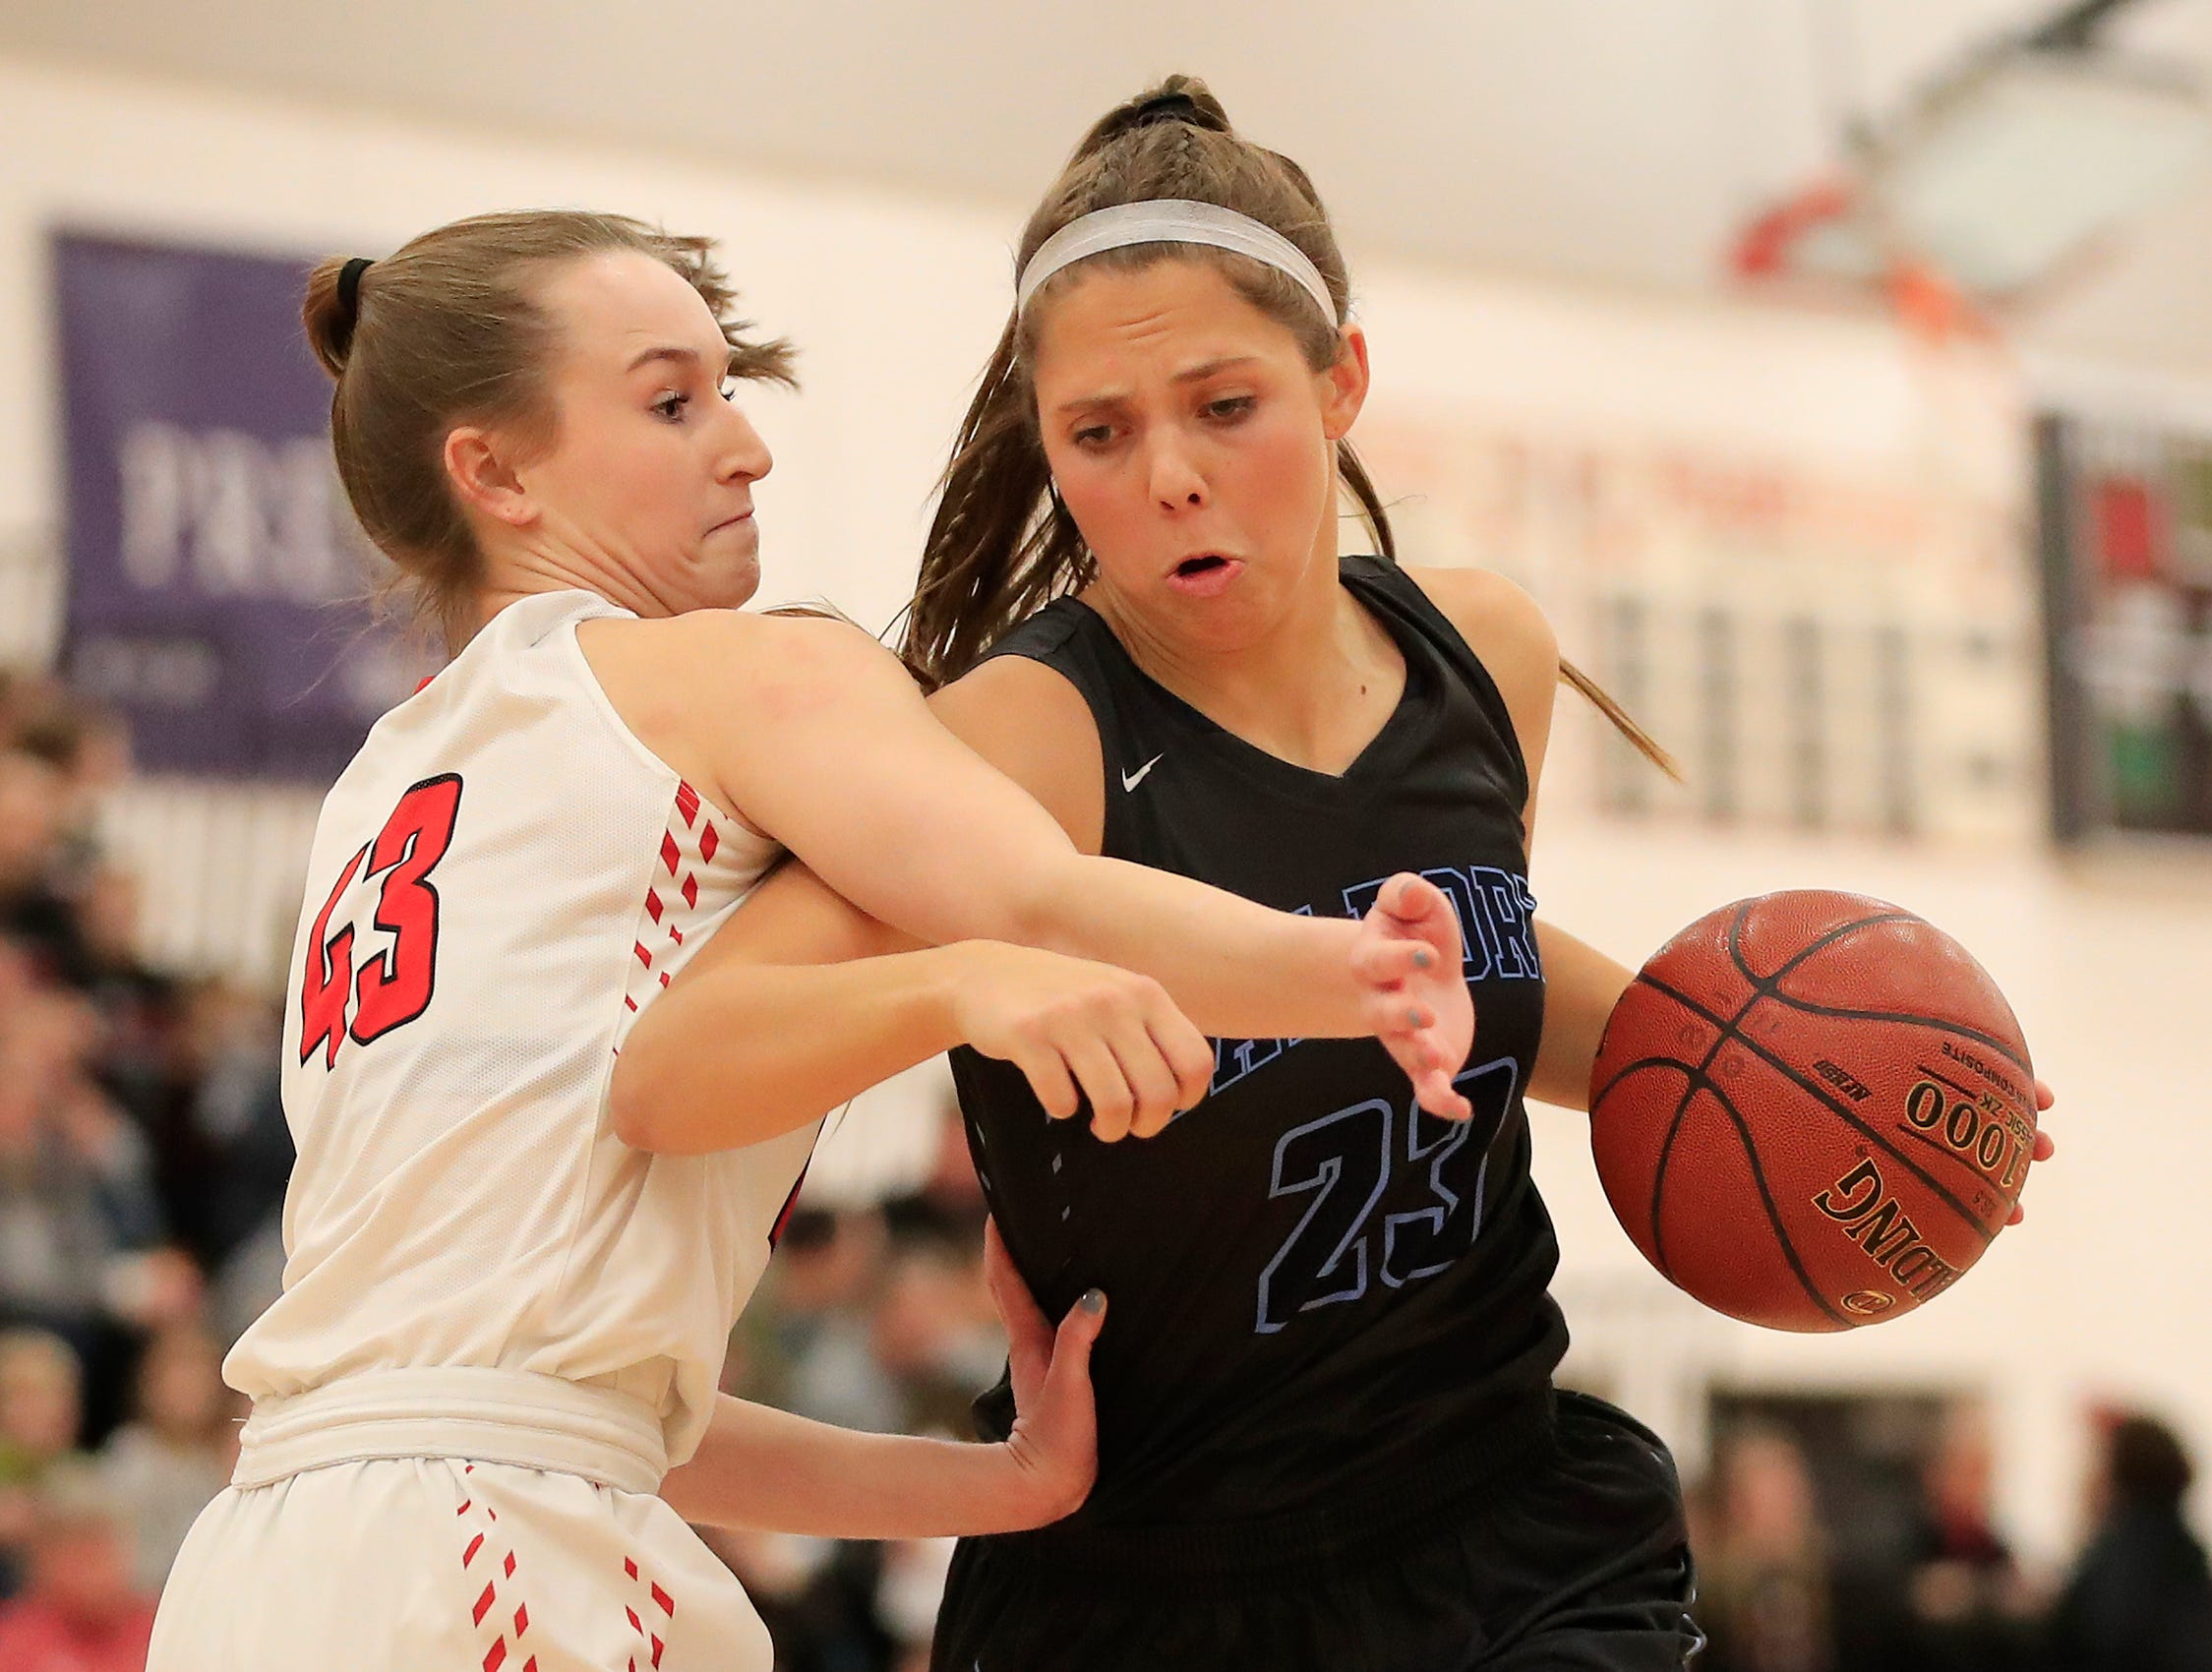 Bay Port's Emma Nagel (23) dribbles against Pulaski's Paige Steinbrecher (43) in a girls basketball game at Pulaski high school on Friday, January 4, 2019 in Pulaski, Wis.